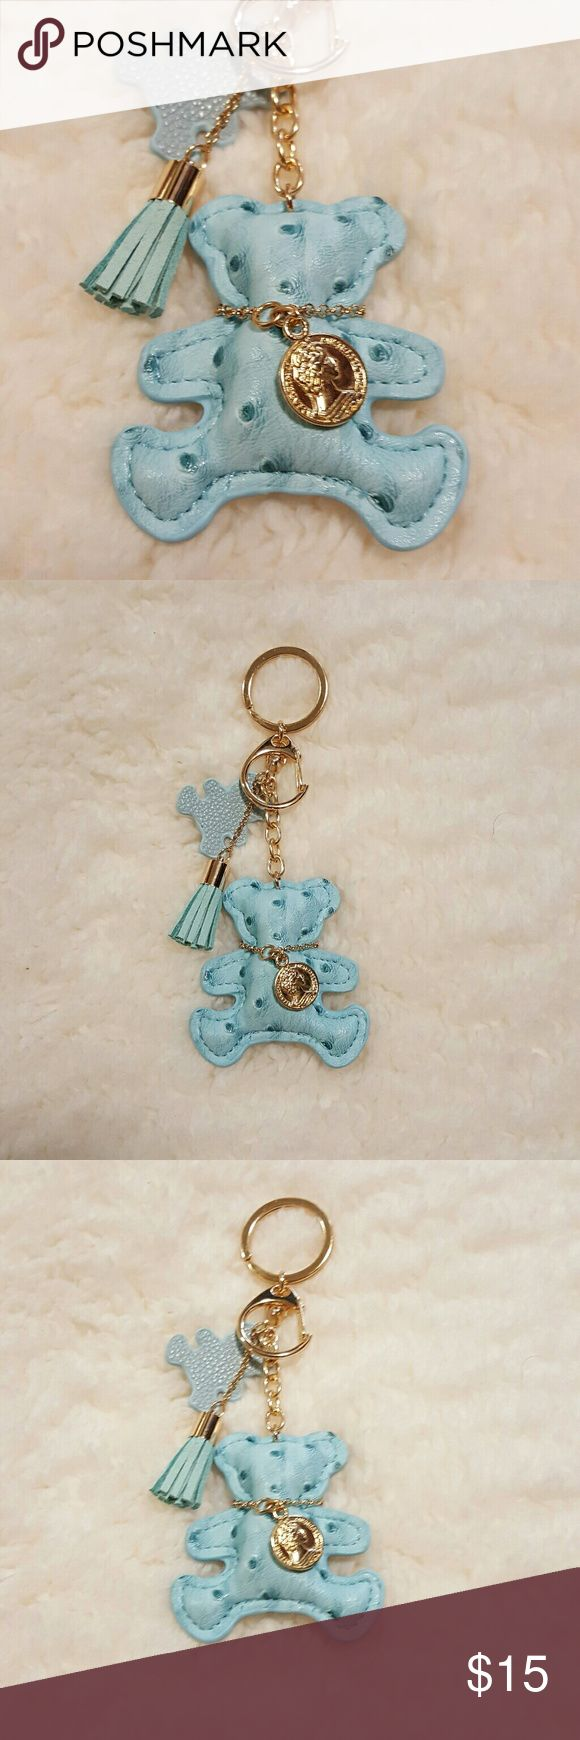 Key Chain FOB Bear Purse Charm Light Blue Brand New. Key Chain Charm FOB Gold Plated Link  • As Always from a clean , pet and smoke free environment  • Always Immediate Shipping Within 1 Business Day Excludes Weekends  • Always Immediate resolutions to any and all issues problems or inquiries • Please Check out My Other items For sale.  • Positive Feedback is Always Awesome and Greatly Appreciated Accessories Key & Card Holders